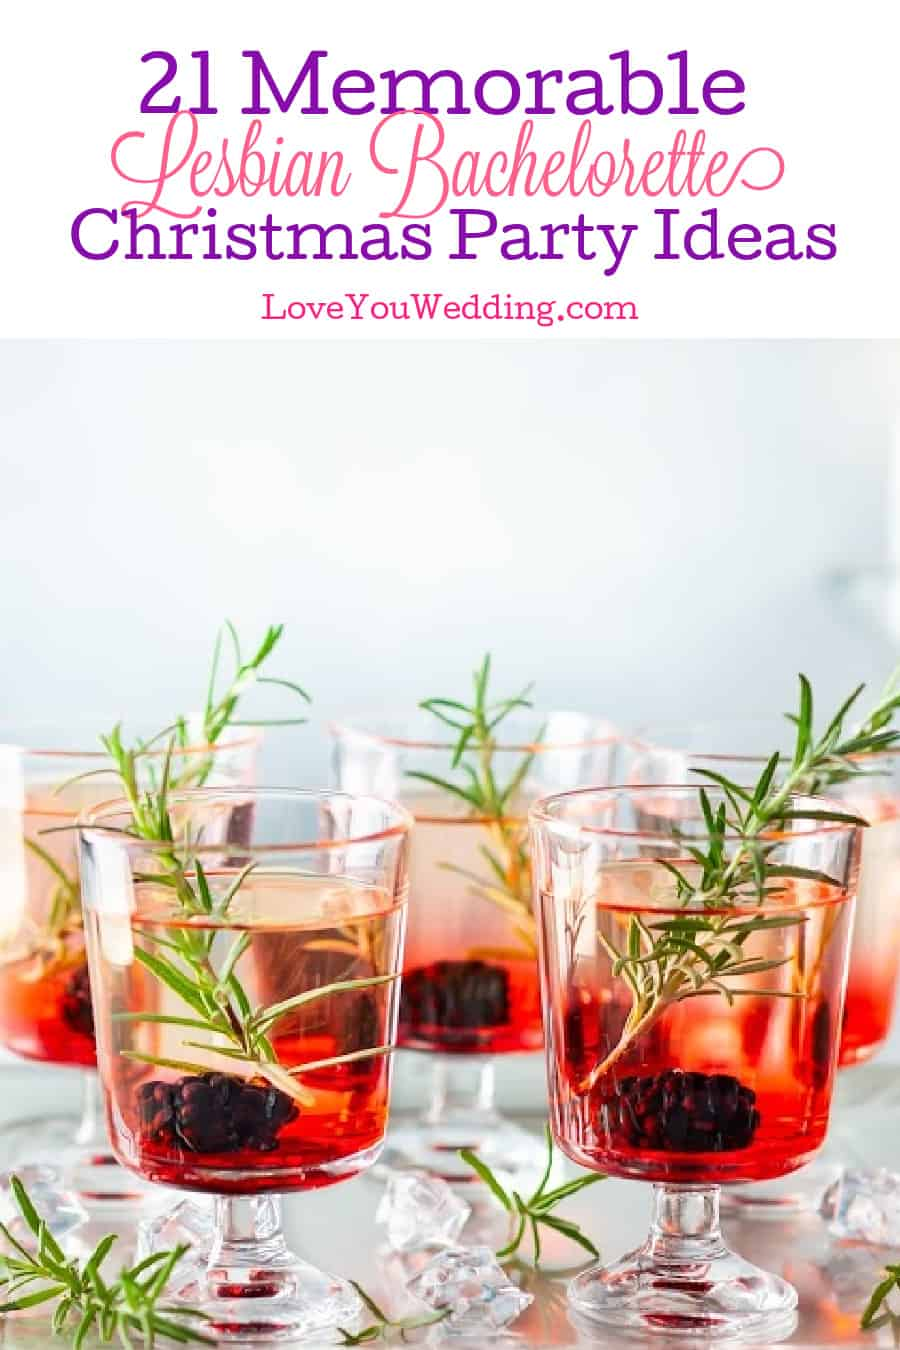 Host a Christmas lesbian bachelorette party that your guests will remember for all the right reasons). Check out 21 ideas to help you!